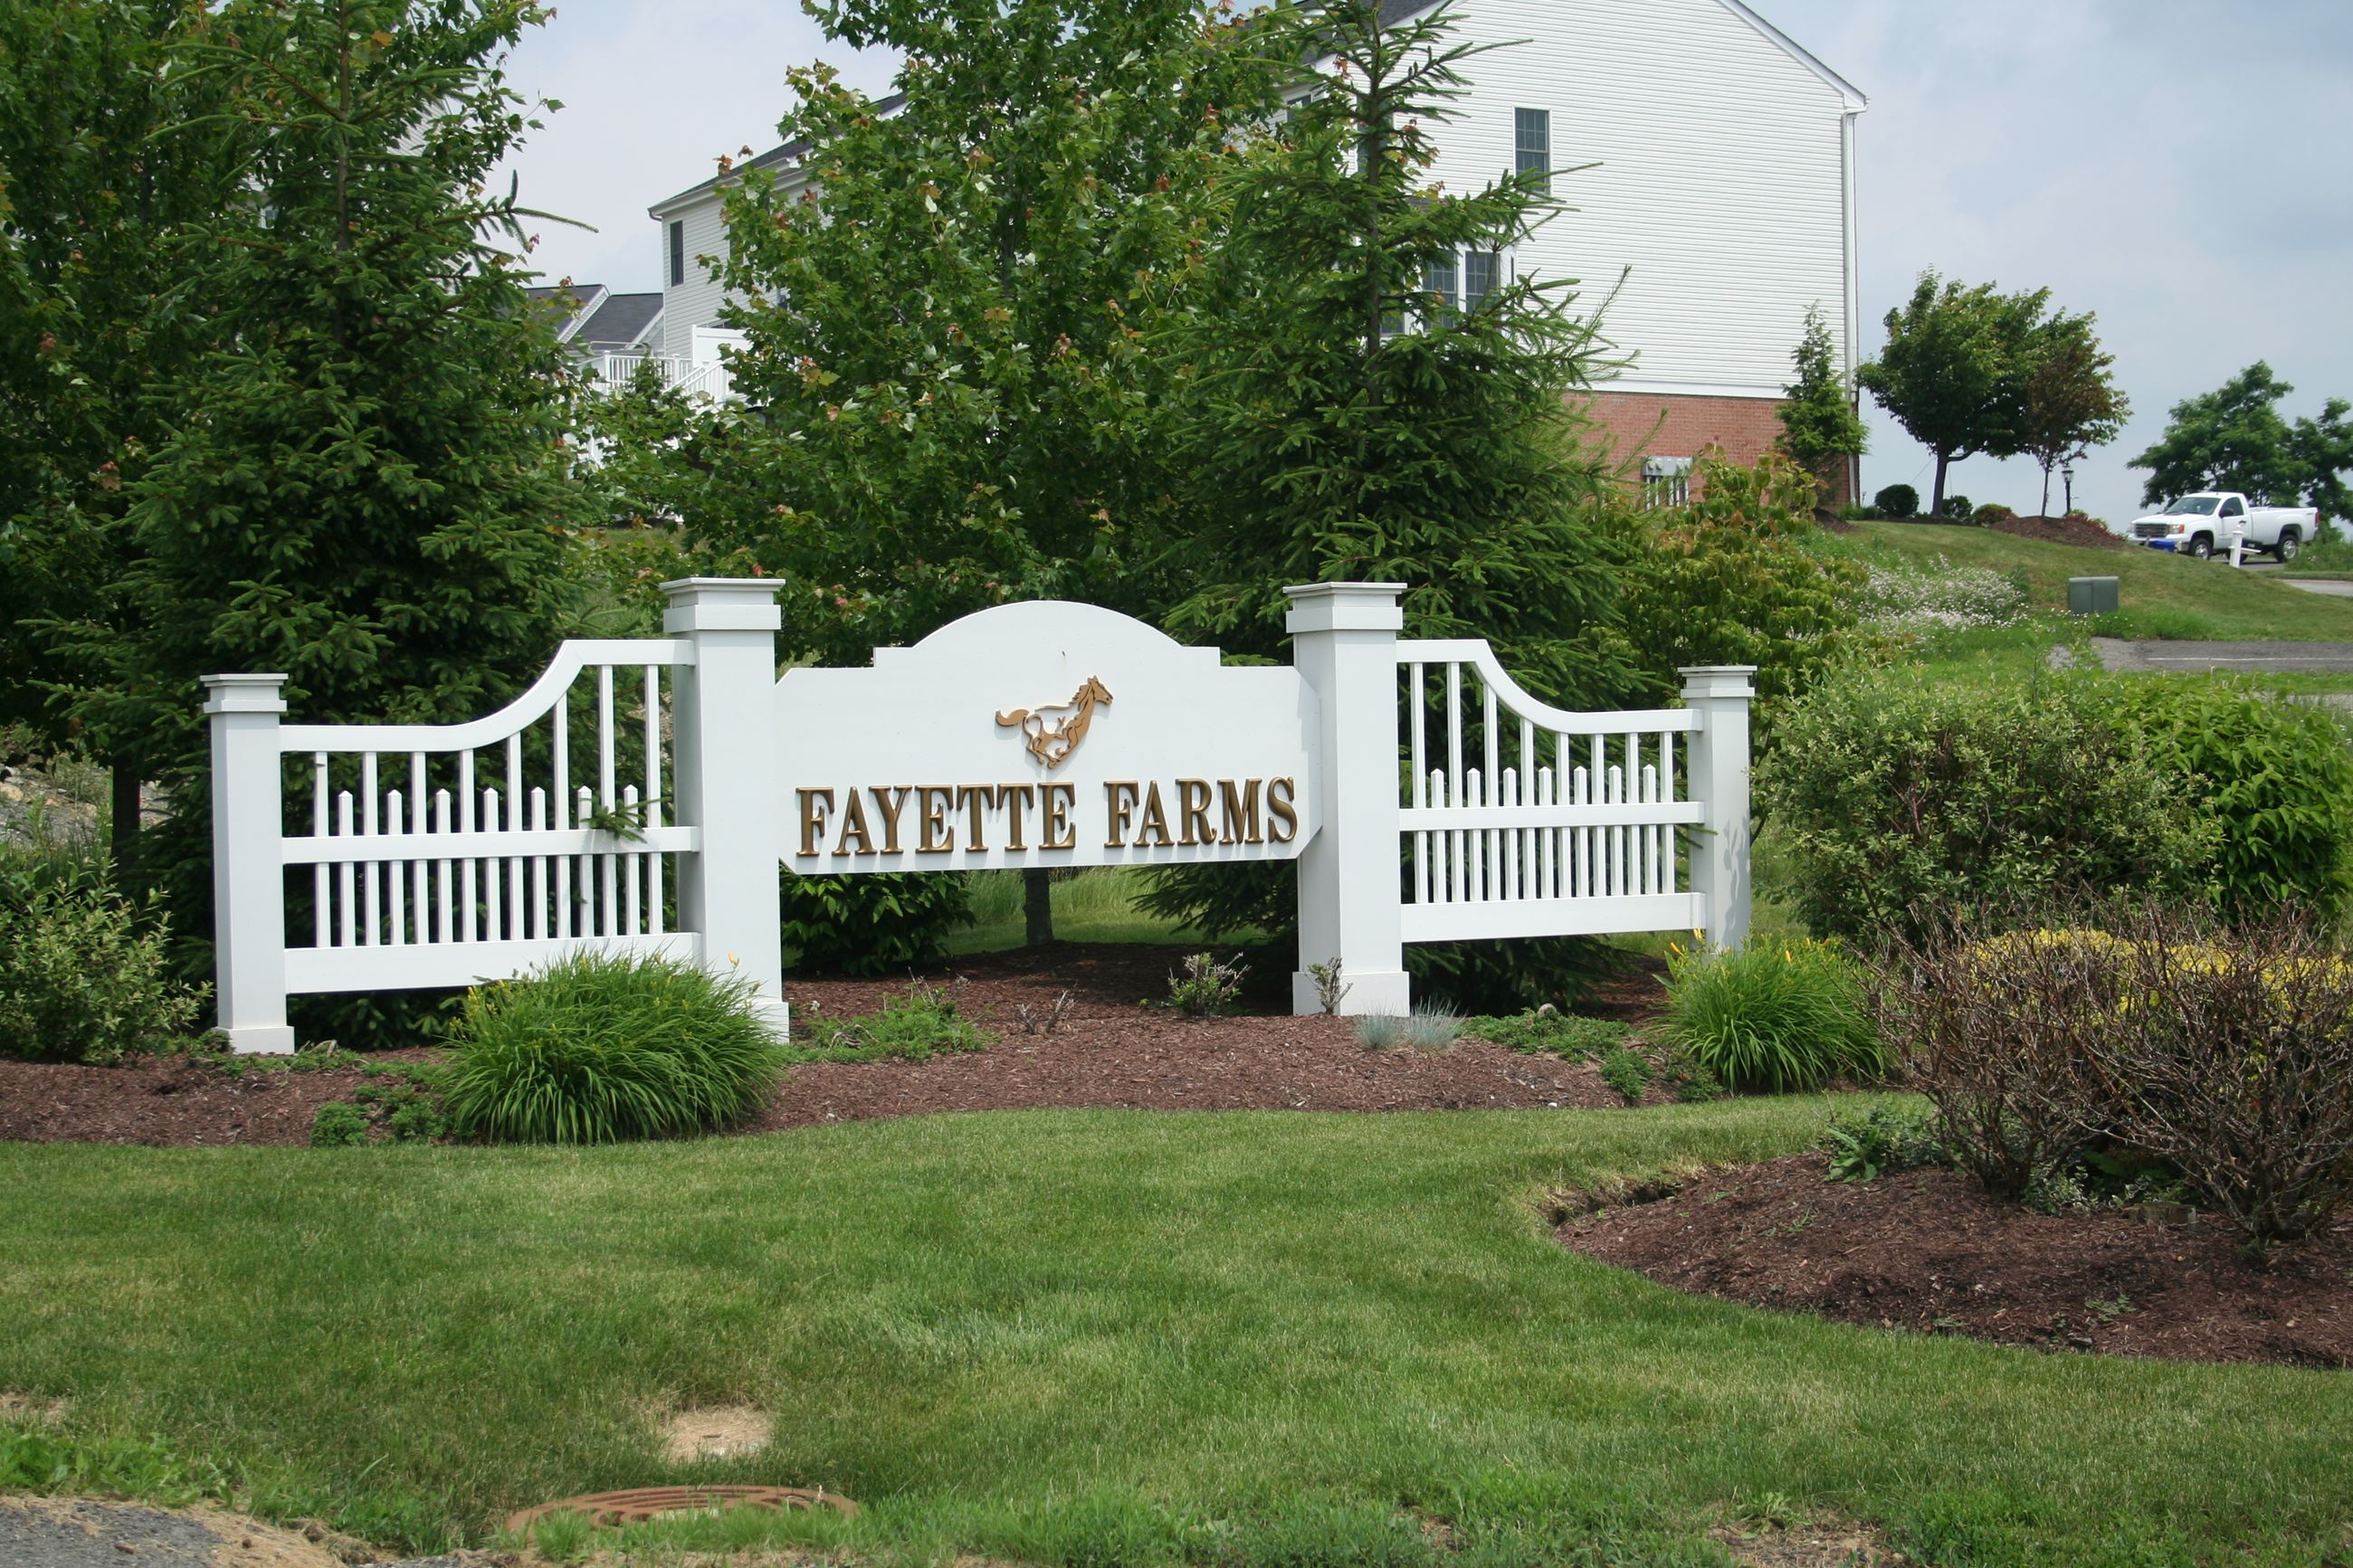 Fayette Farms Sign